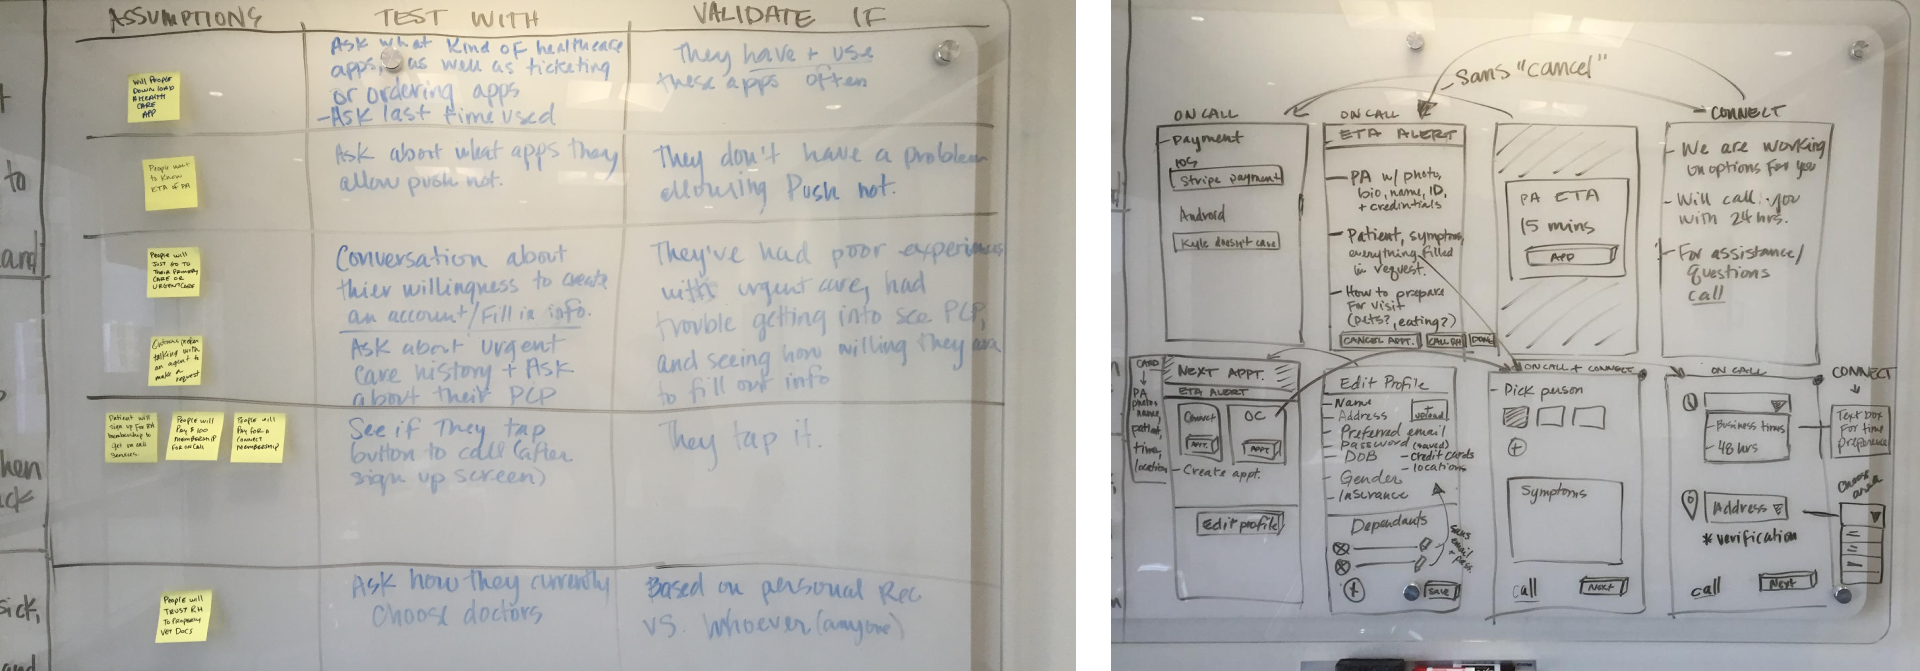 Photos from the product design sprint